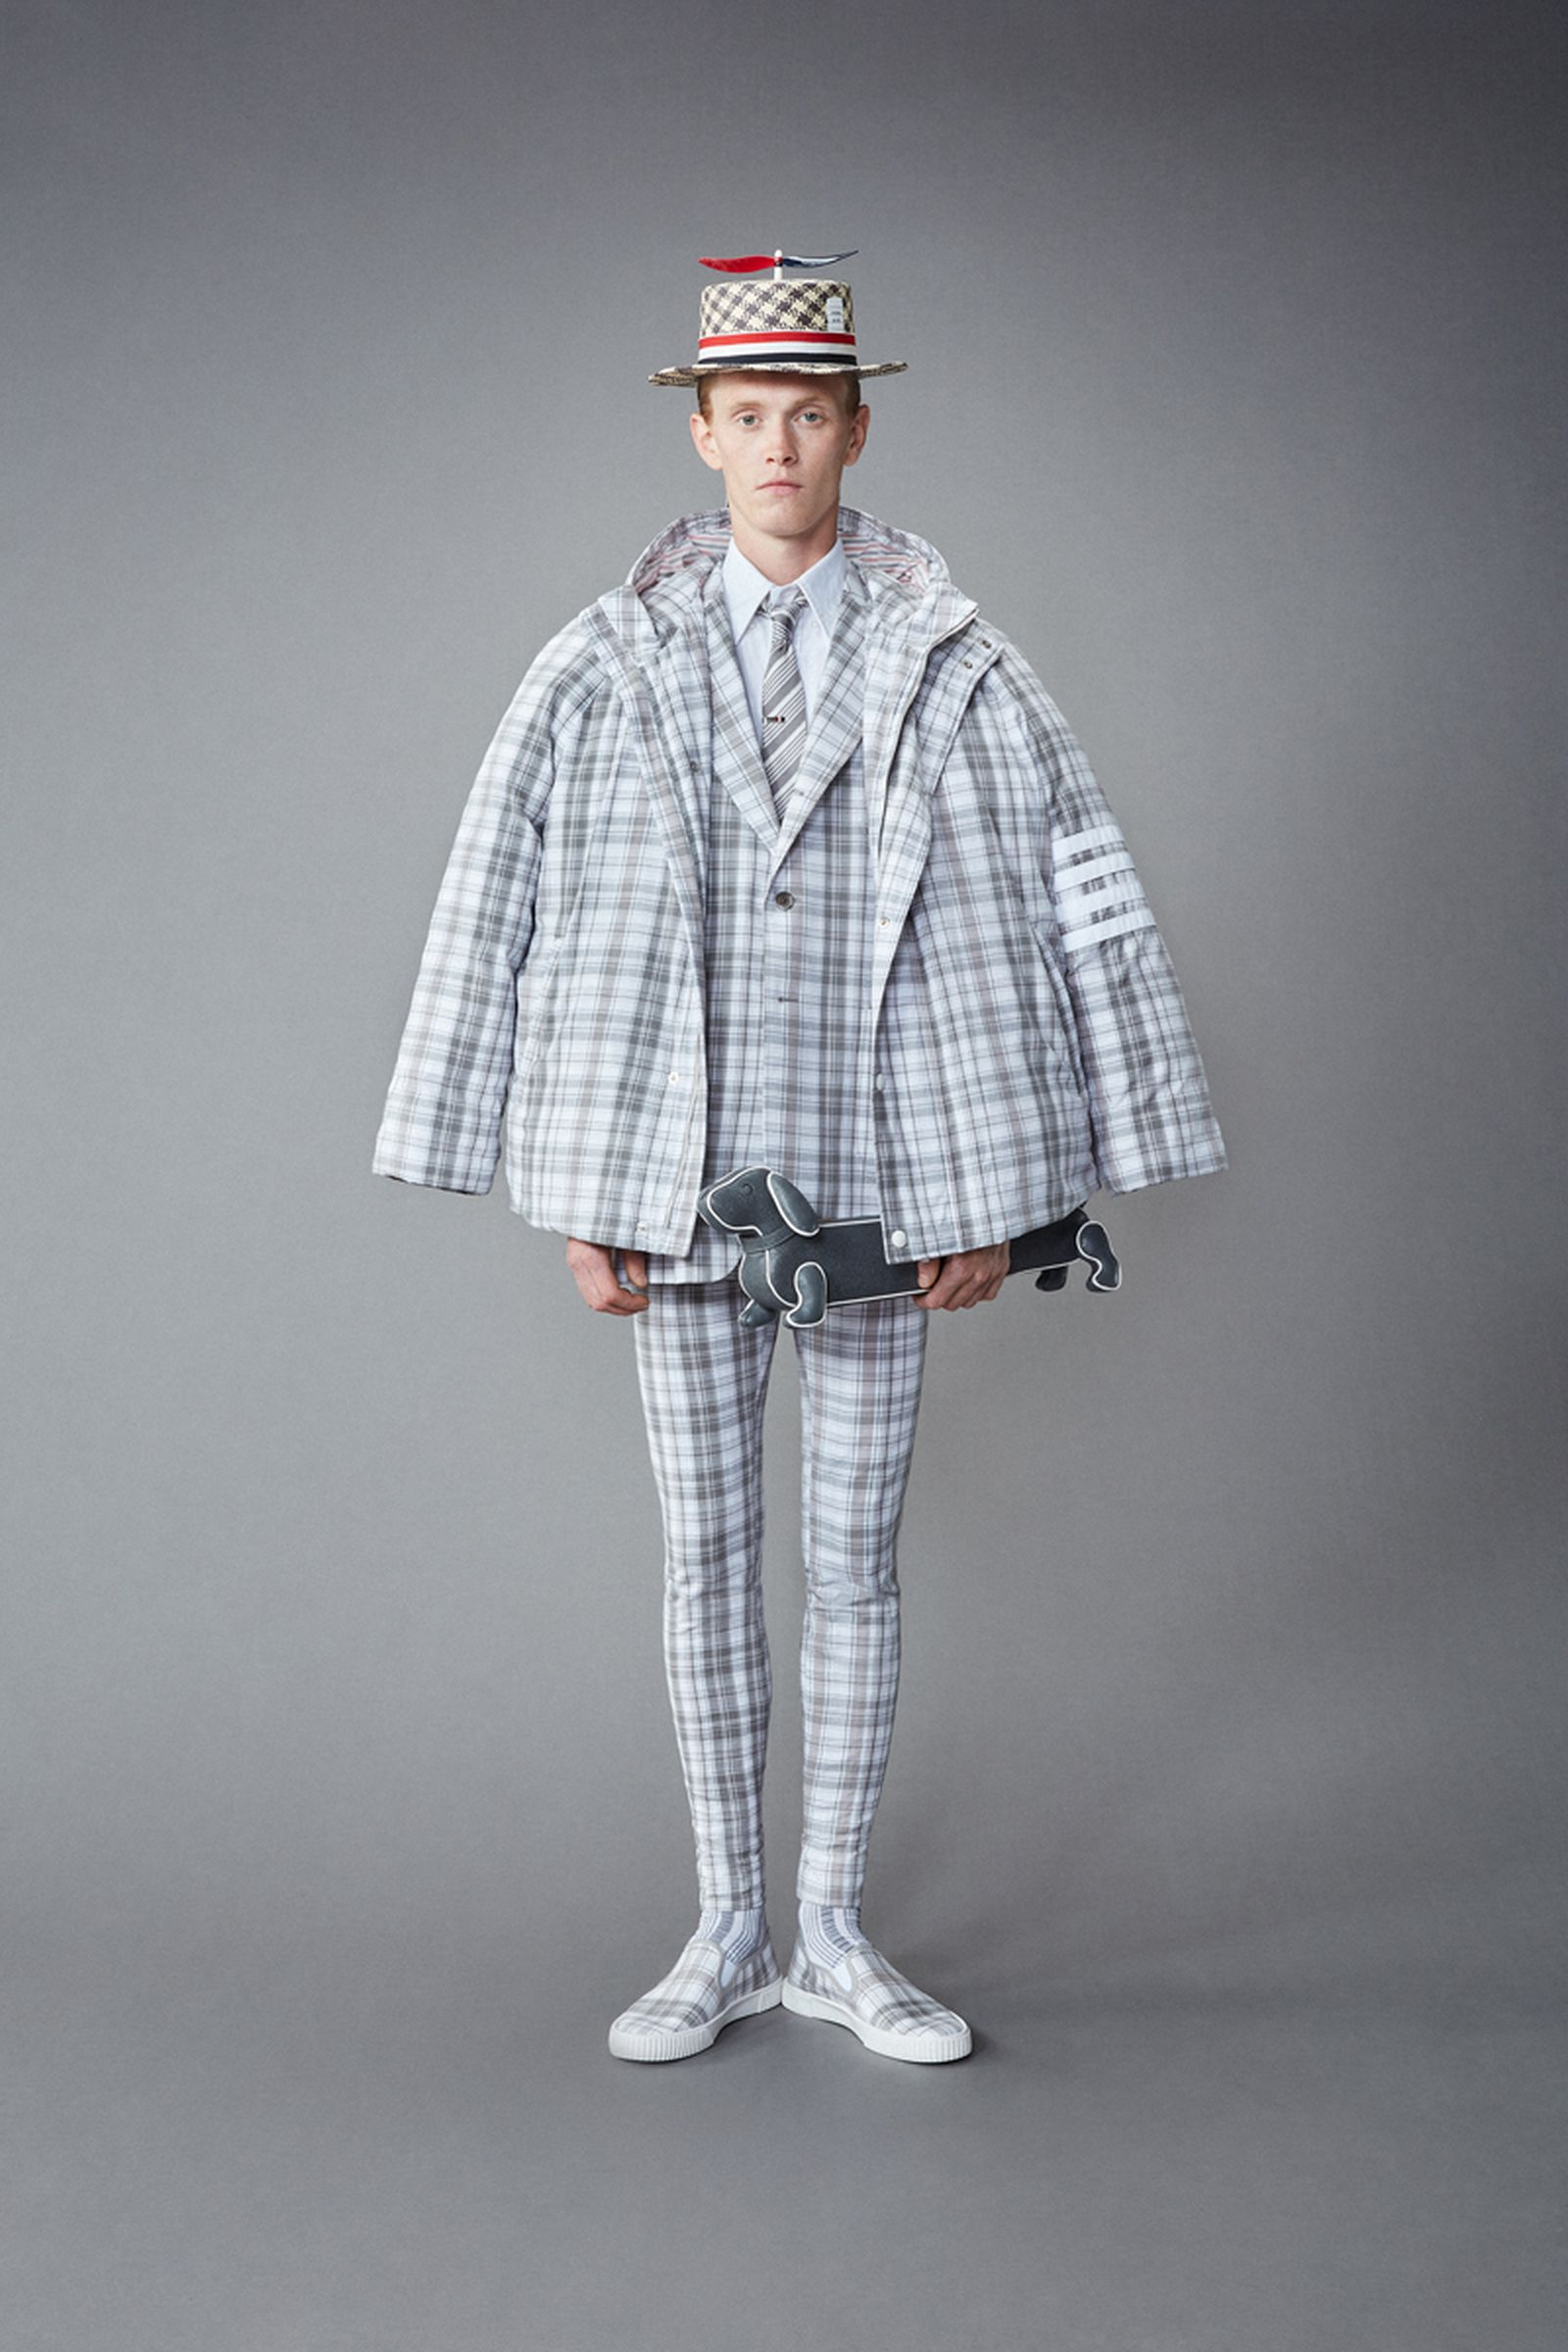 thom-browne-resort-2022-collection- (12)